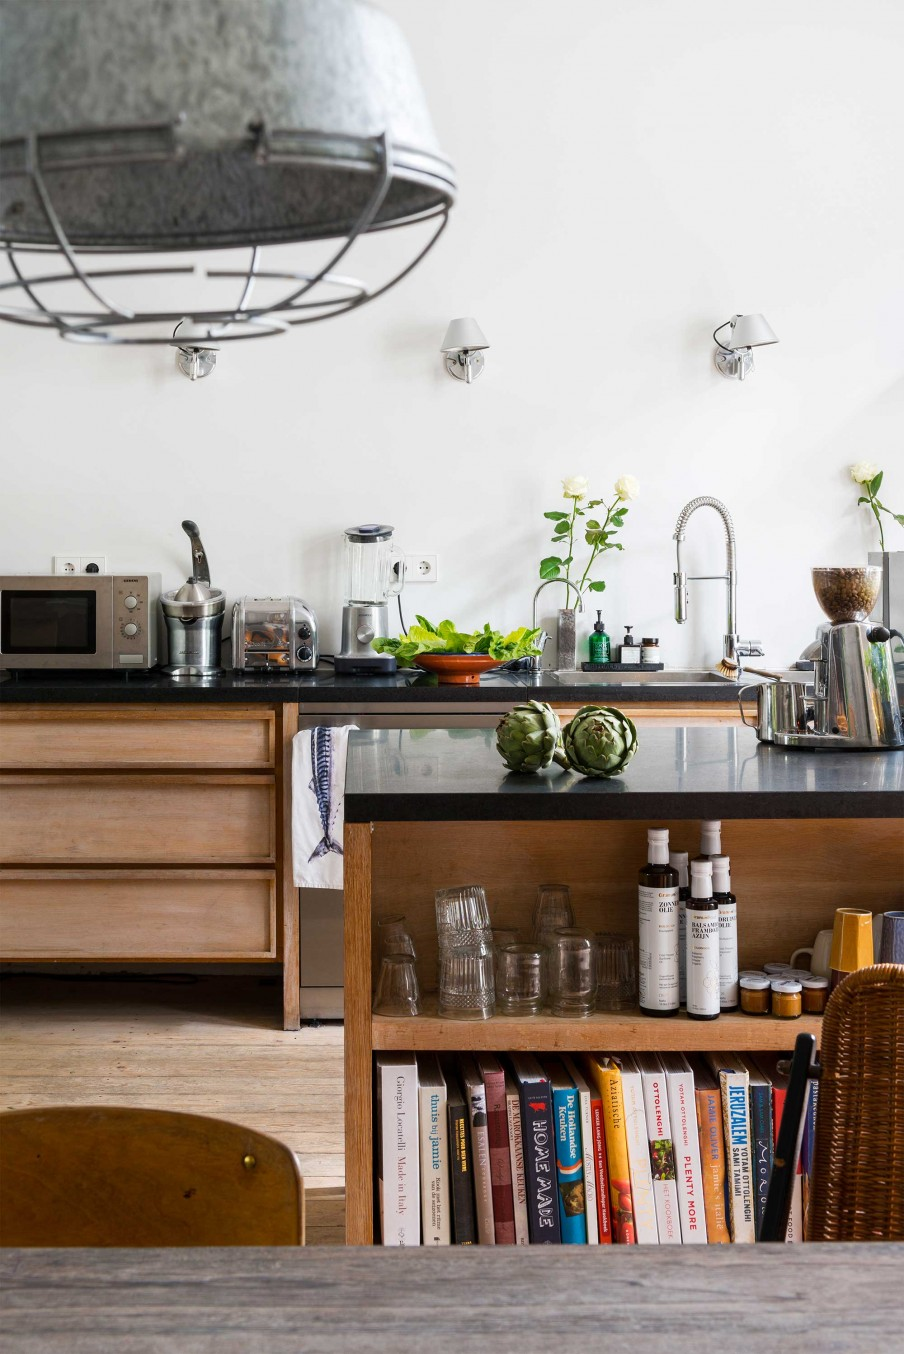 05-The-kitchen-features-sleek-black-surfaces-wooden-cabinets-and-floor-its-filled-with-light-and-not-as-whimsy-as-other-areas